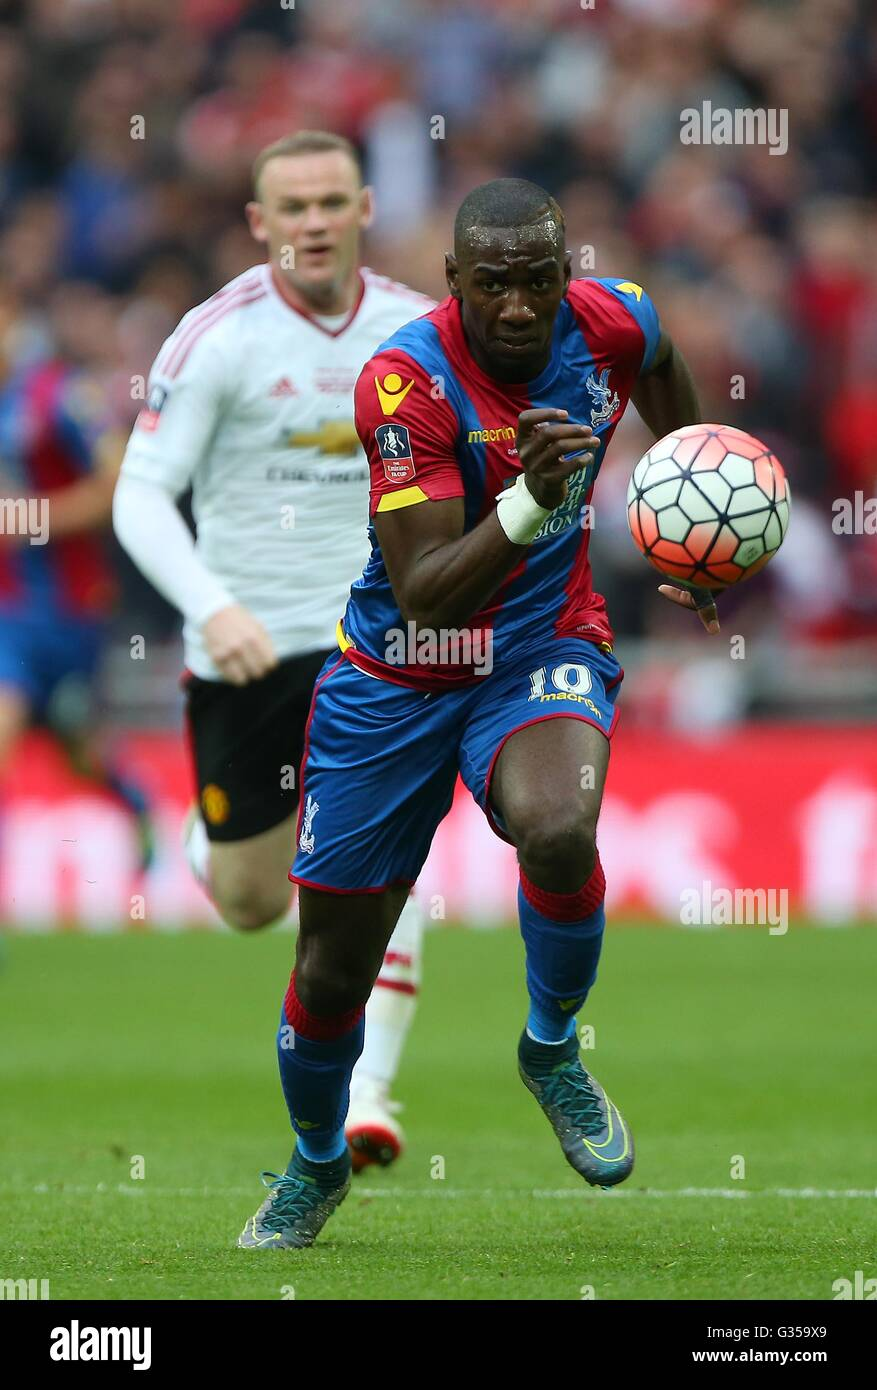 Crystal Palace's Yannick Bolasie chases the ball during the Emirates FA Cup Final between Crystal Palace and Manchester - Stock Image